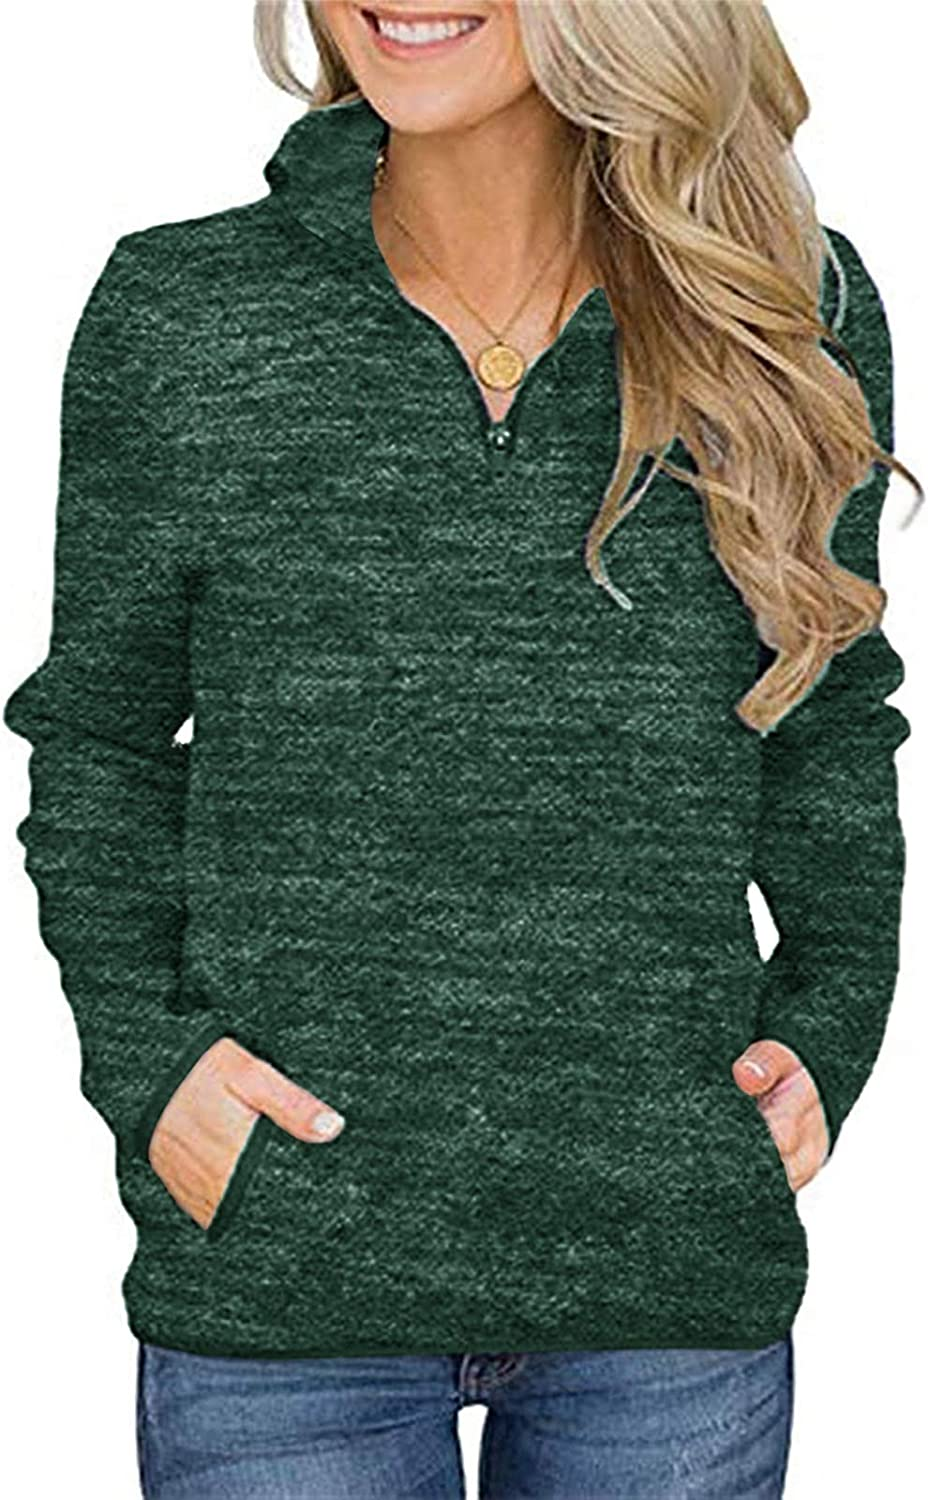 GAMISOTE Women's Long Sleeve High Collar Sweatshirt Quarter Zip Up Pullover Tops with Pockets